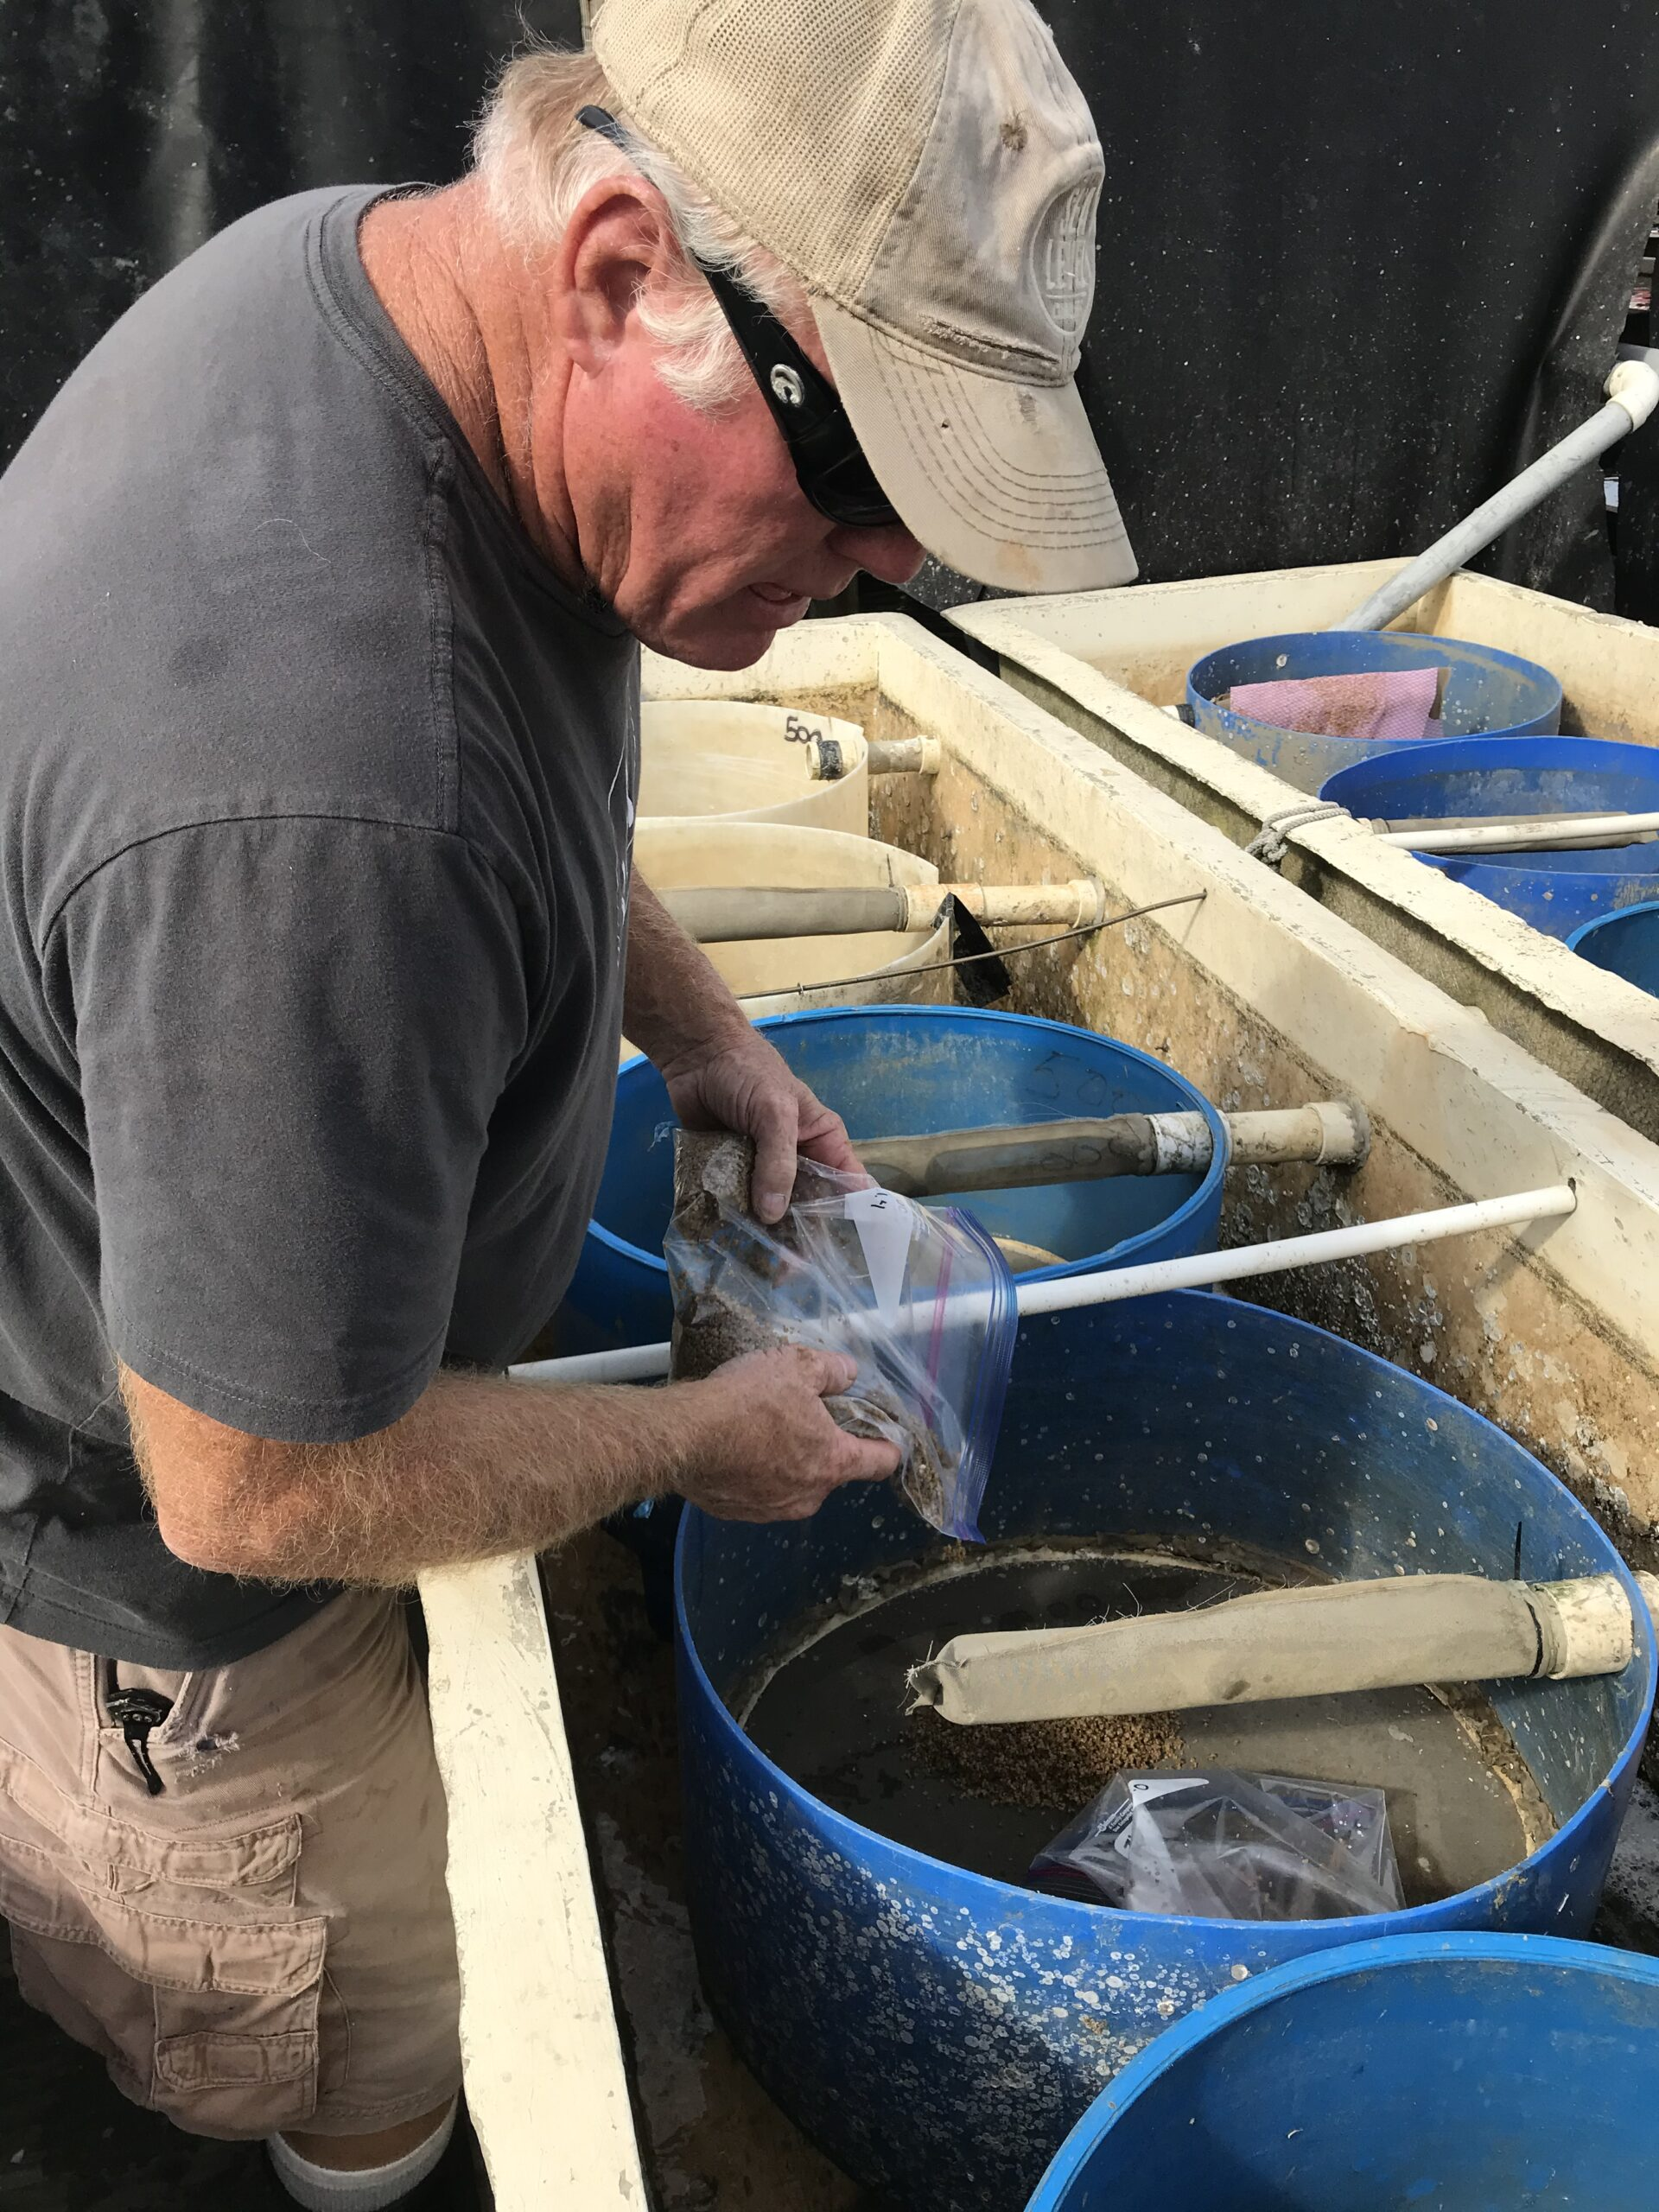 The Morris operation includes a hatchery and nursery for oysters and clams. Credit: Eric Herbst